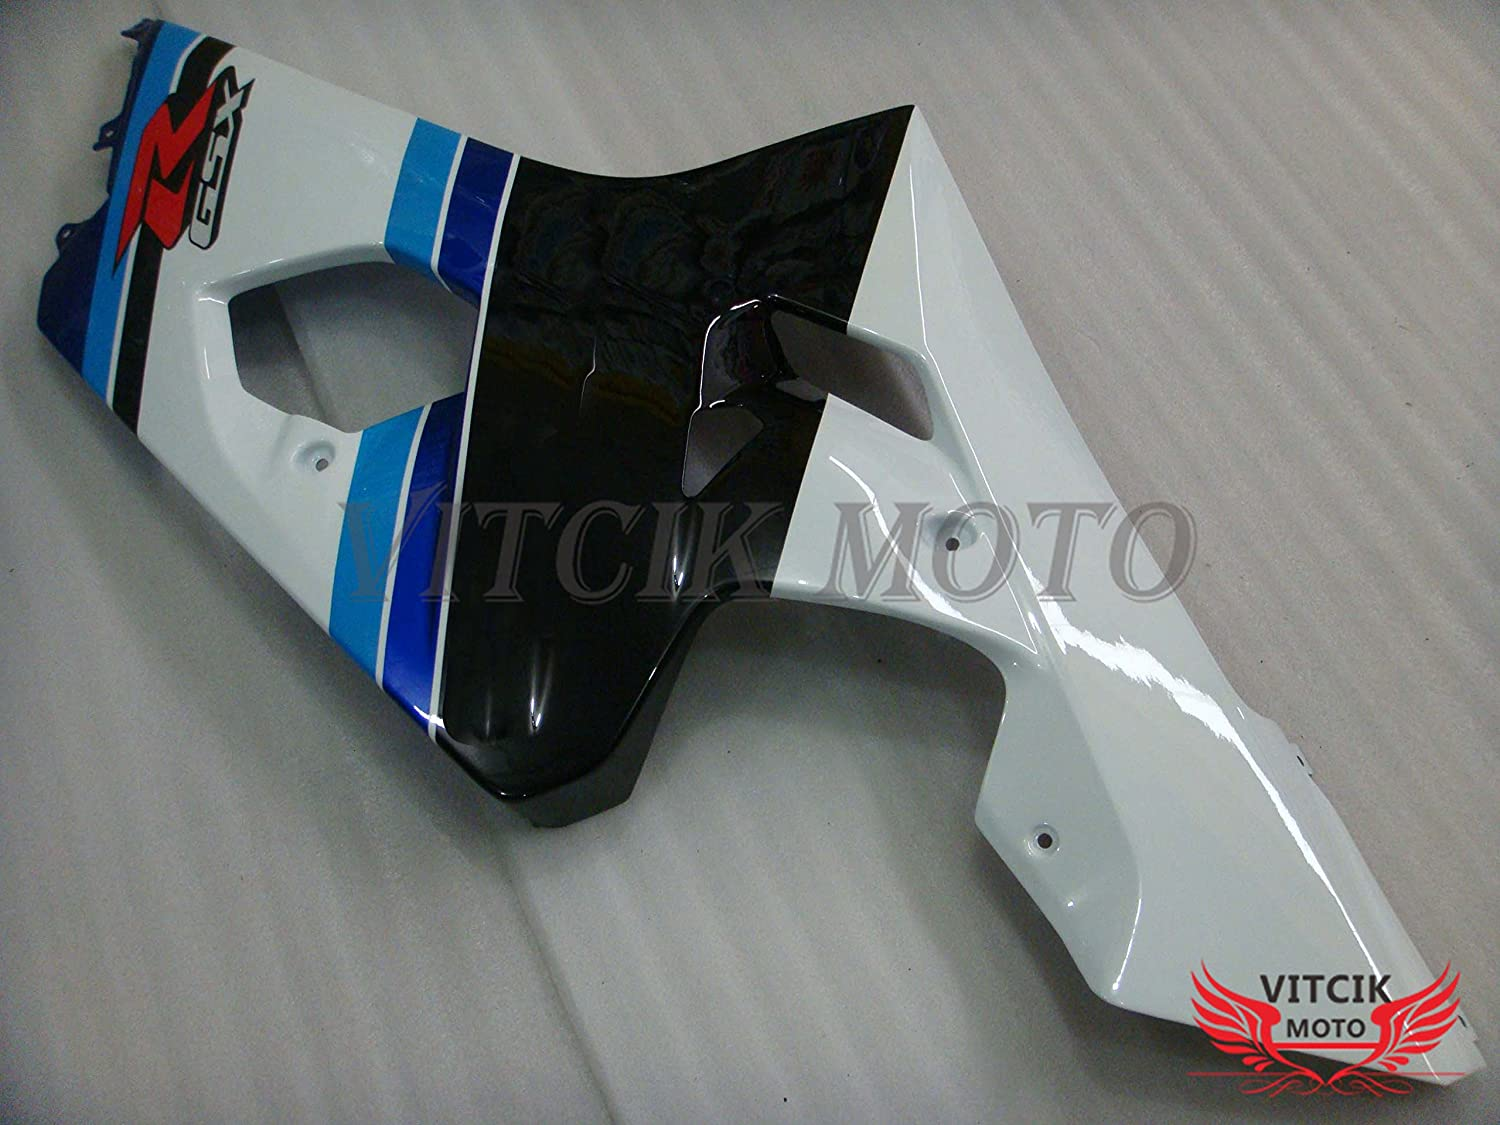 A041 VITCIK Fairing Kits Fit for Suzuki GSX-R750 GSX-R600 K4 2004 2005 GSXR 600 750 K4 04 05 Plastic ABS Injection Mold Complete Motorcycle Body Aftermarket Bodywork Frame Blue /& White